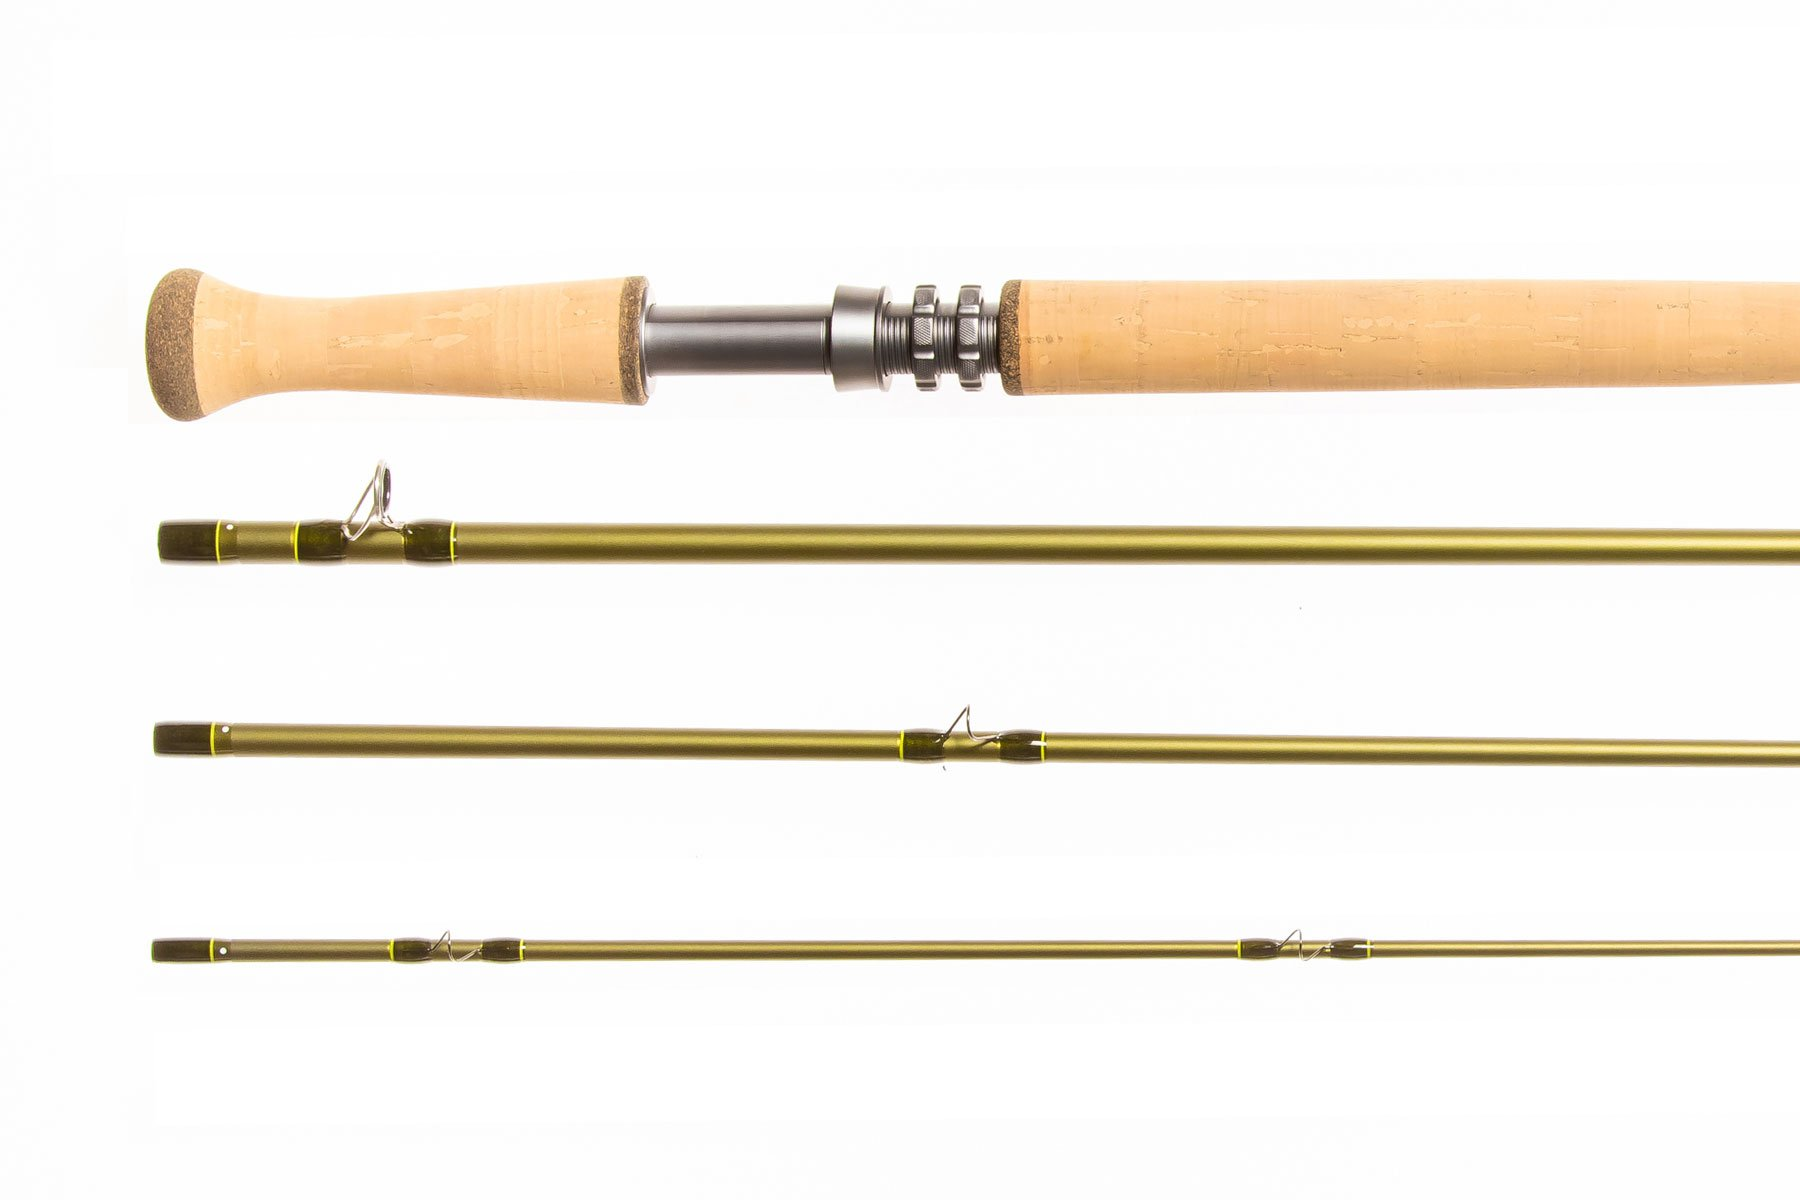 Double handed 14ft 9wt, 4 piece